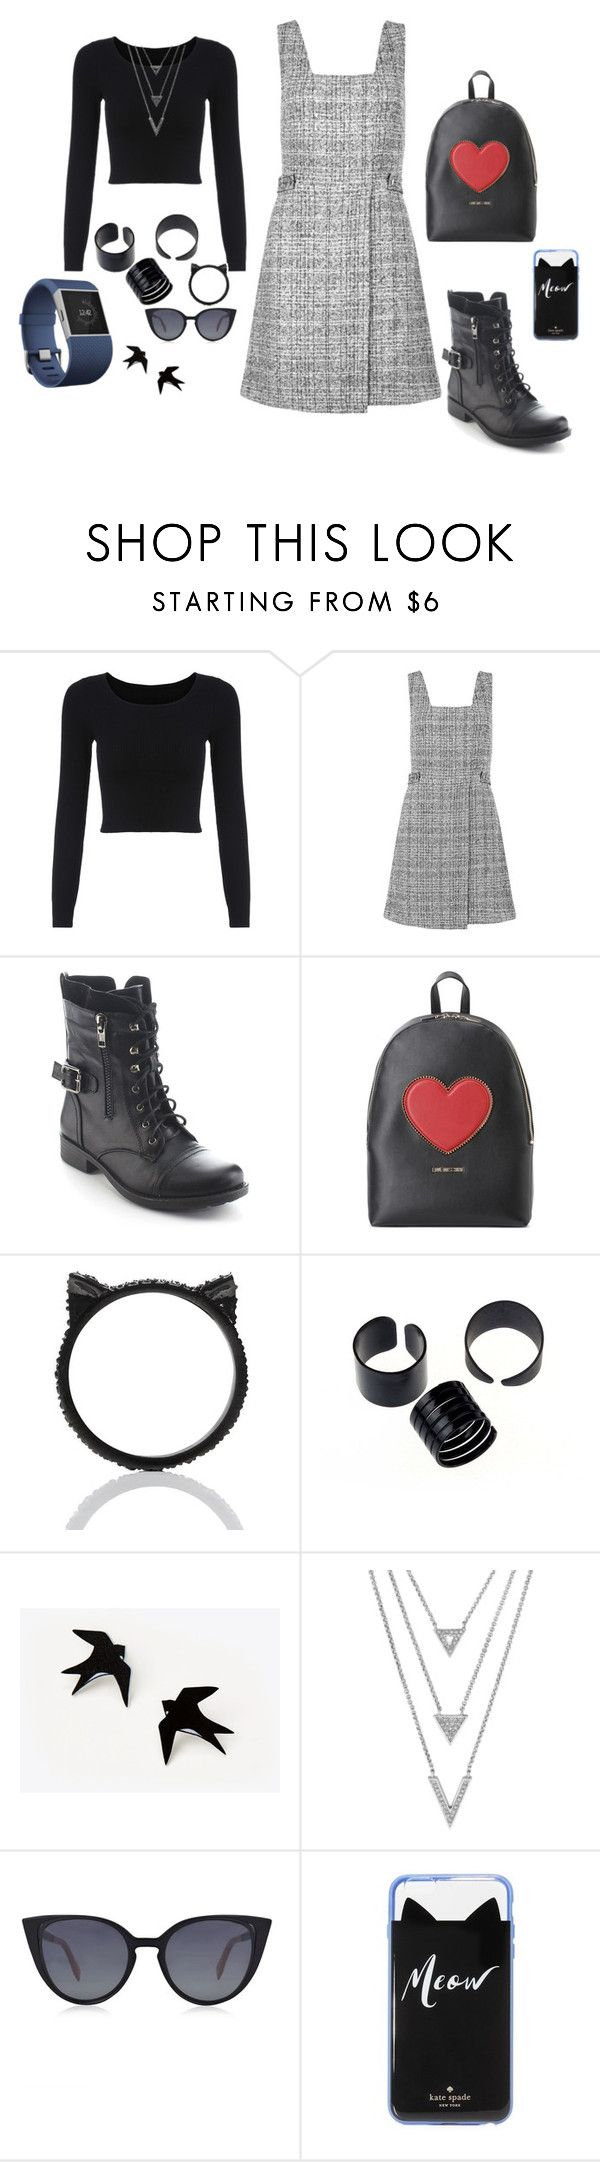 Vestindo a quinta-feira. by simone-silva-s2 on Polyvore featuring moda, New Look, Refresh, Love Moschino, Kate Spade, Fendi and Fitbit